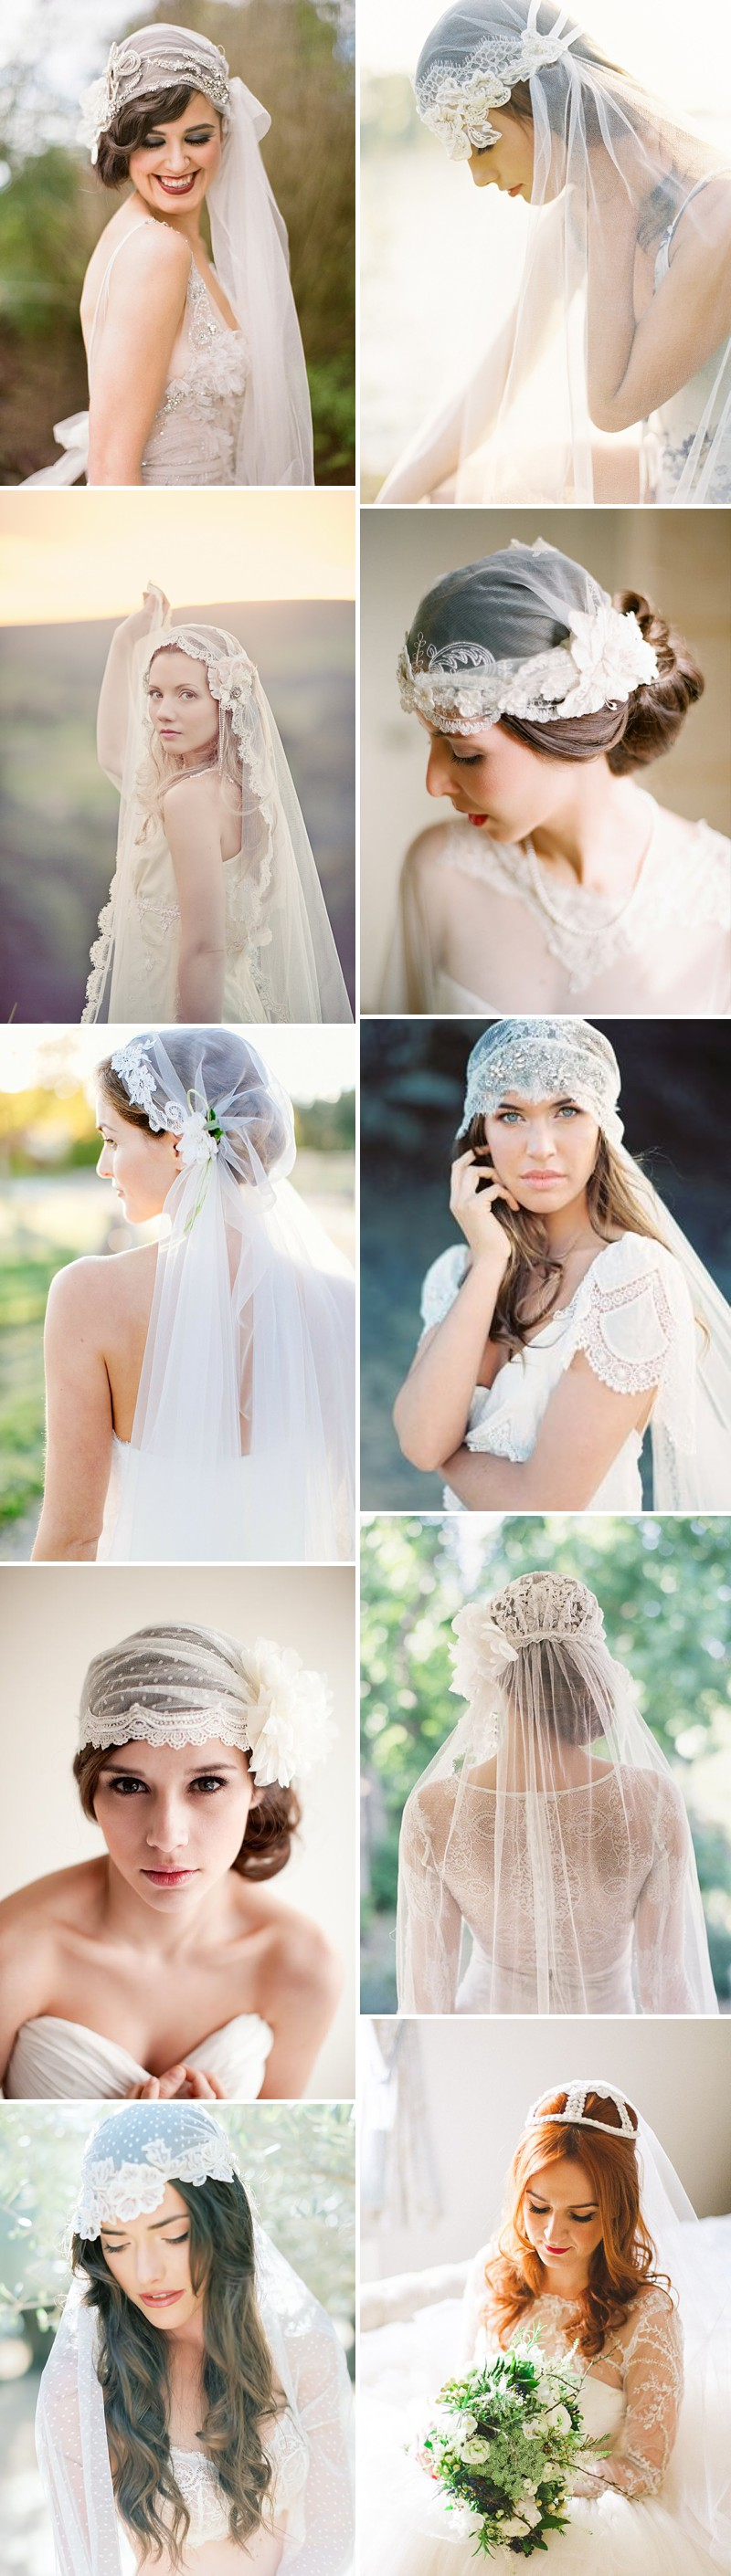 Rock My Wedding's Favourite 2014 Bridal Trends Including Statement Back Bridal Gowns, Juliet Bridal Veil And Two Piece Wedding Dresses._0003